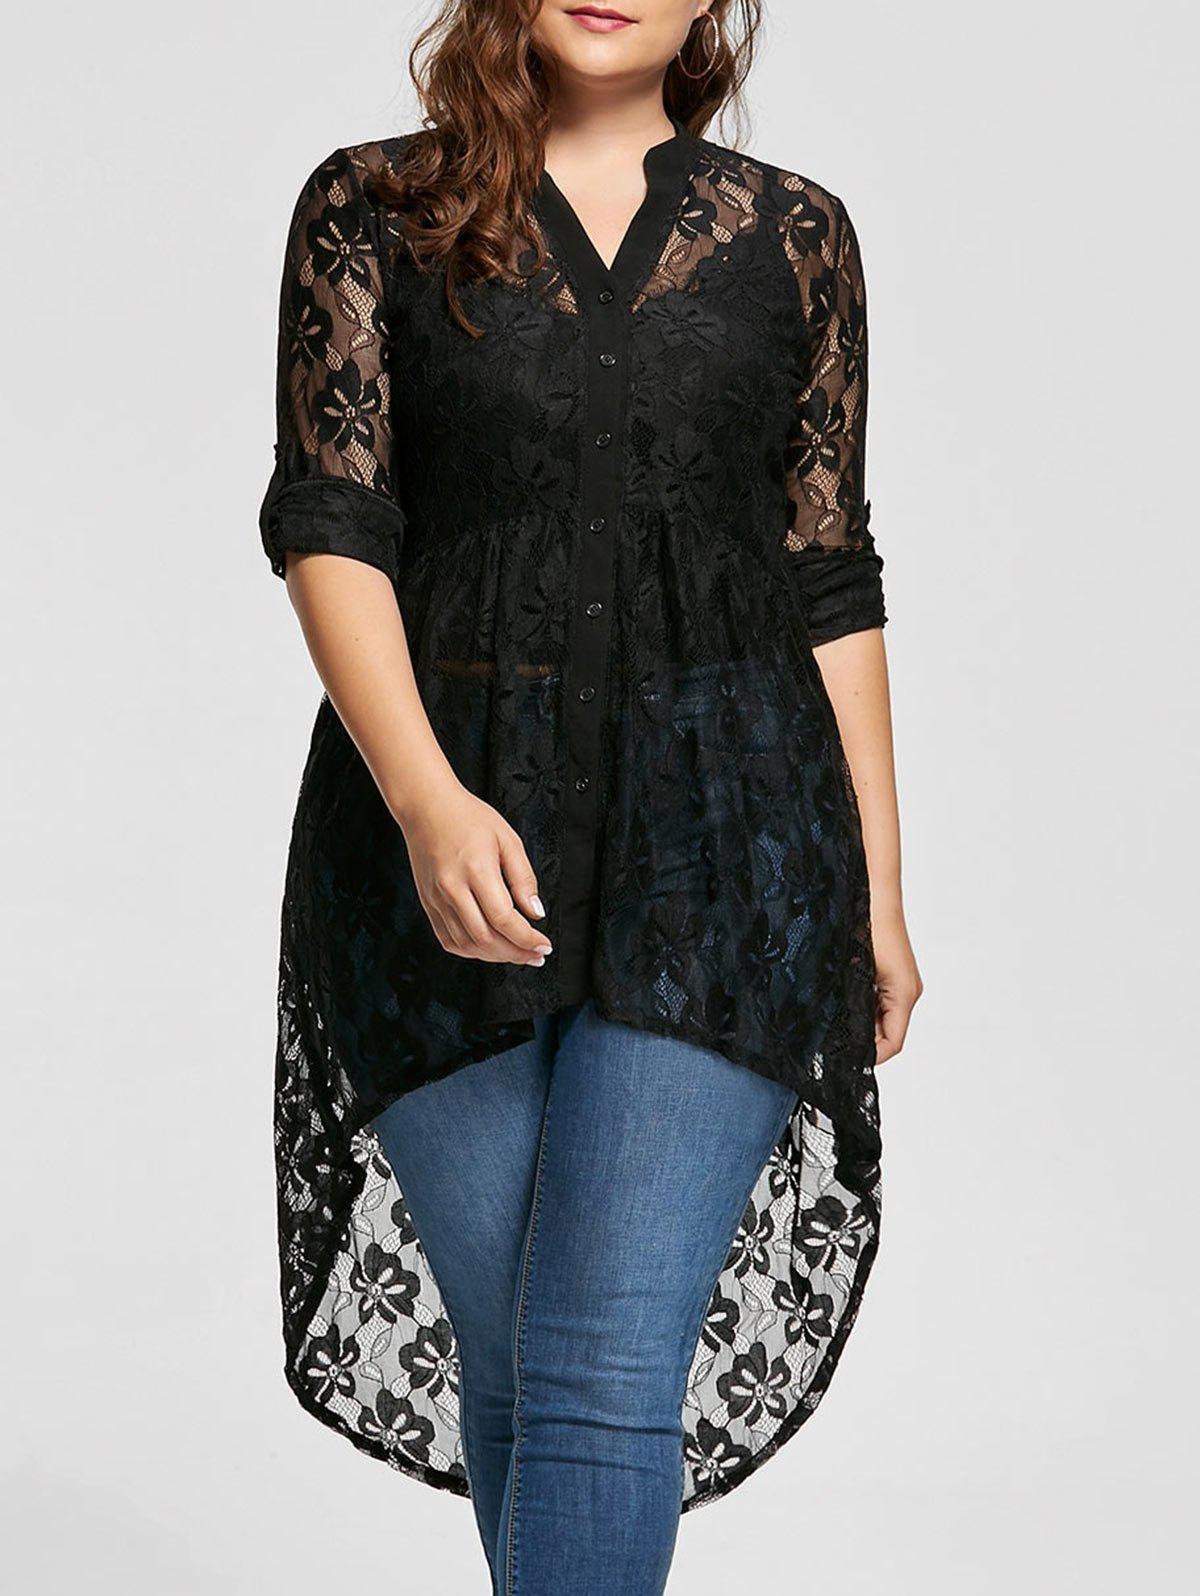 High Low Lace Long Sleeve Plus Size TopWOMEN<br><br>Size: 3XL; Color: BLACK; Material: Polyester; Shirt Length: Long; Sleeve Length: Full; Collar: V-Neck; Style: Fashion; Season: Fall,Spring; Pattern Type: Solid; Weight: 0.2600kg; Package Contents: 1 x Top;